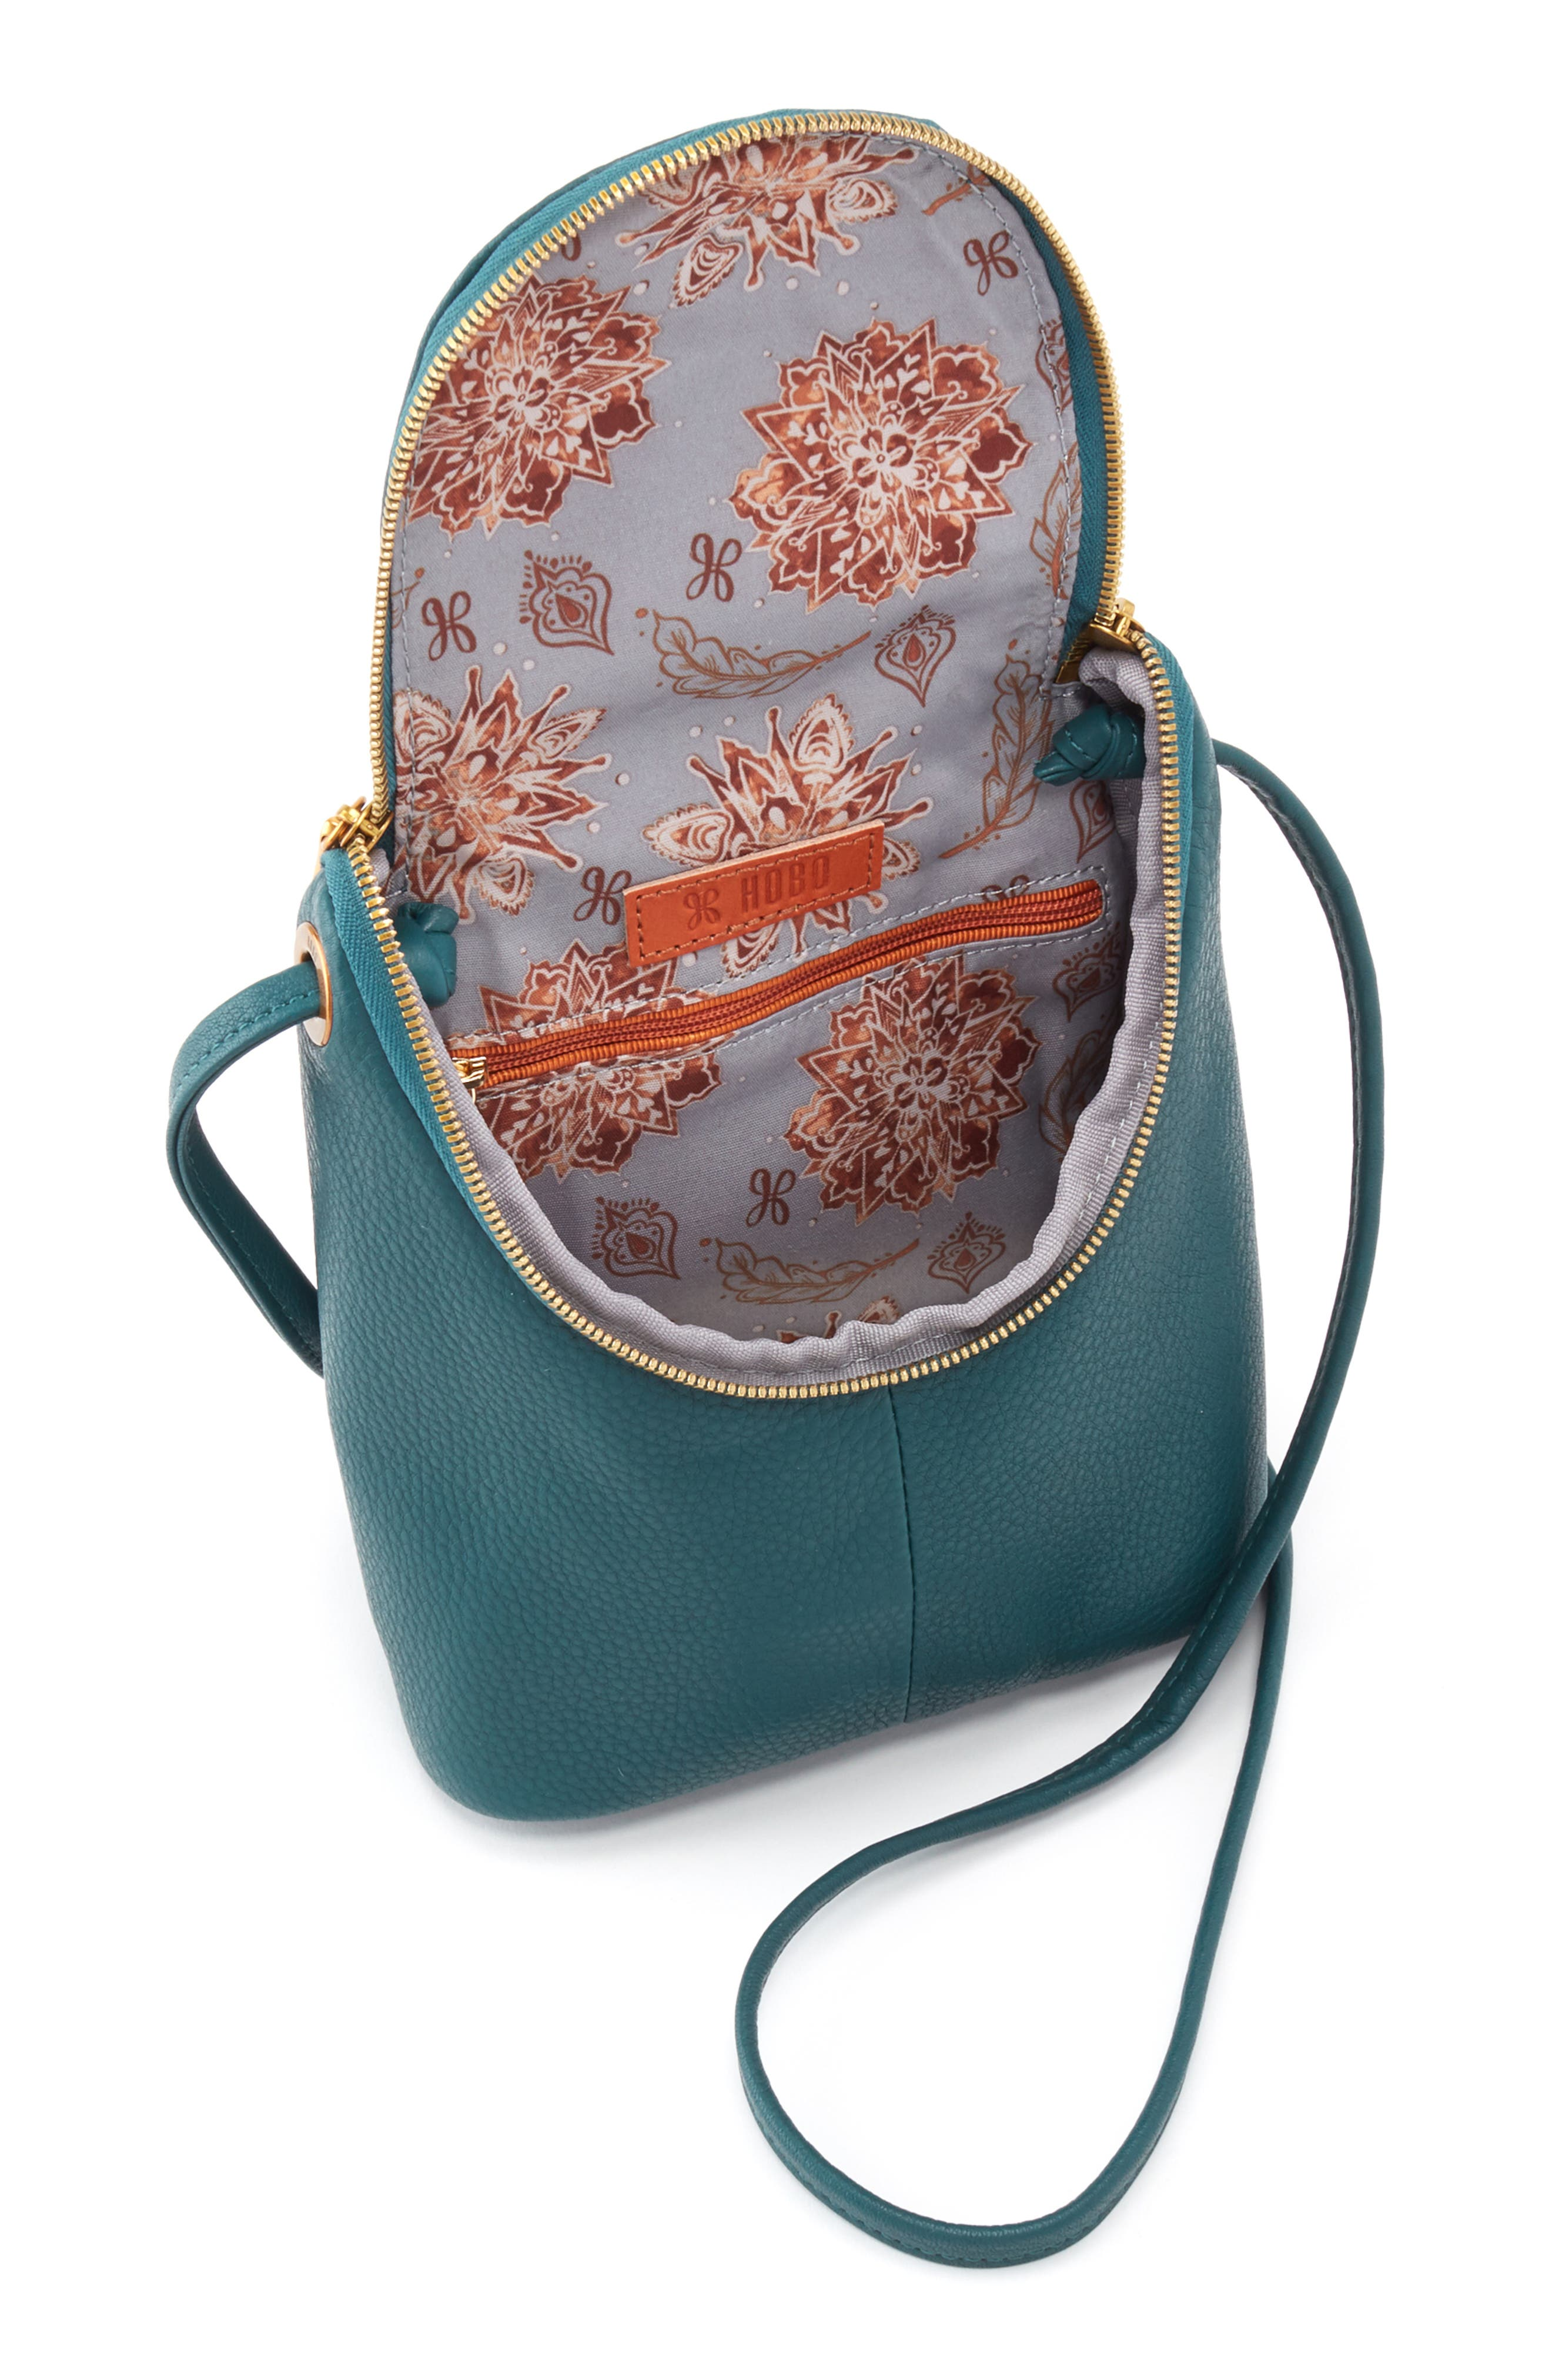 Fern Saddle Bag,                             Alternate thumbnail 3, color,                             DARK TEAL